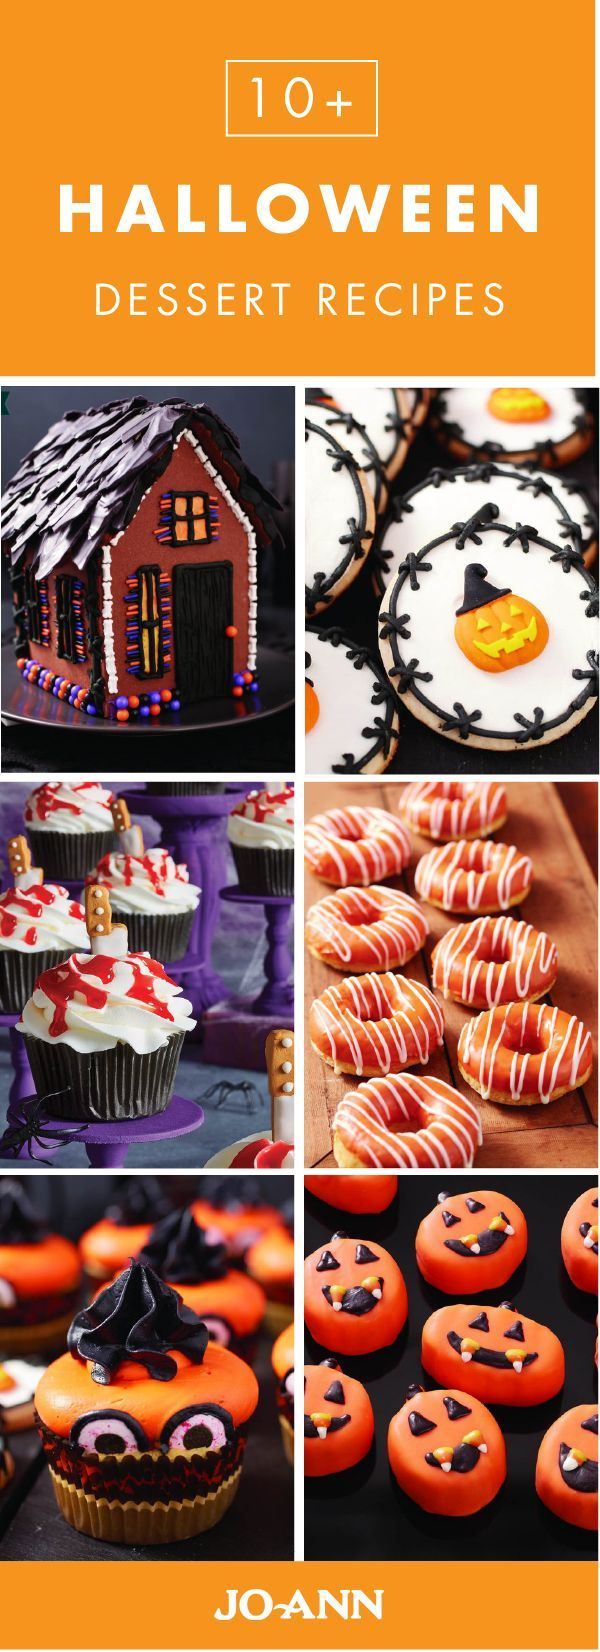 Talk about creative entertaining inspiration! This collection of 10+ Halloween Dessert recipes from Jo-Ann features everything from spooky gingerbread houses and creative cupcakes to traditional pumpkin pies and delicious fall donuts—giving you plenty of ideas for your fall party.